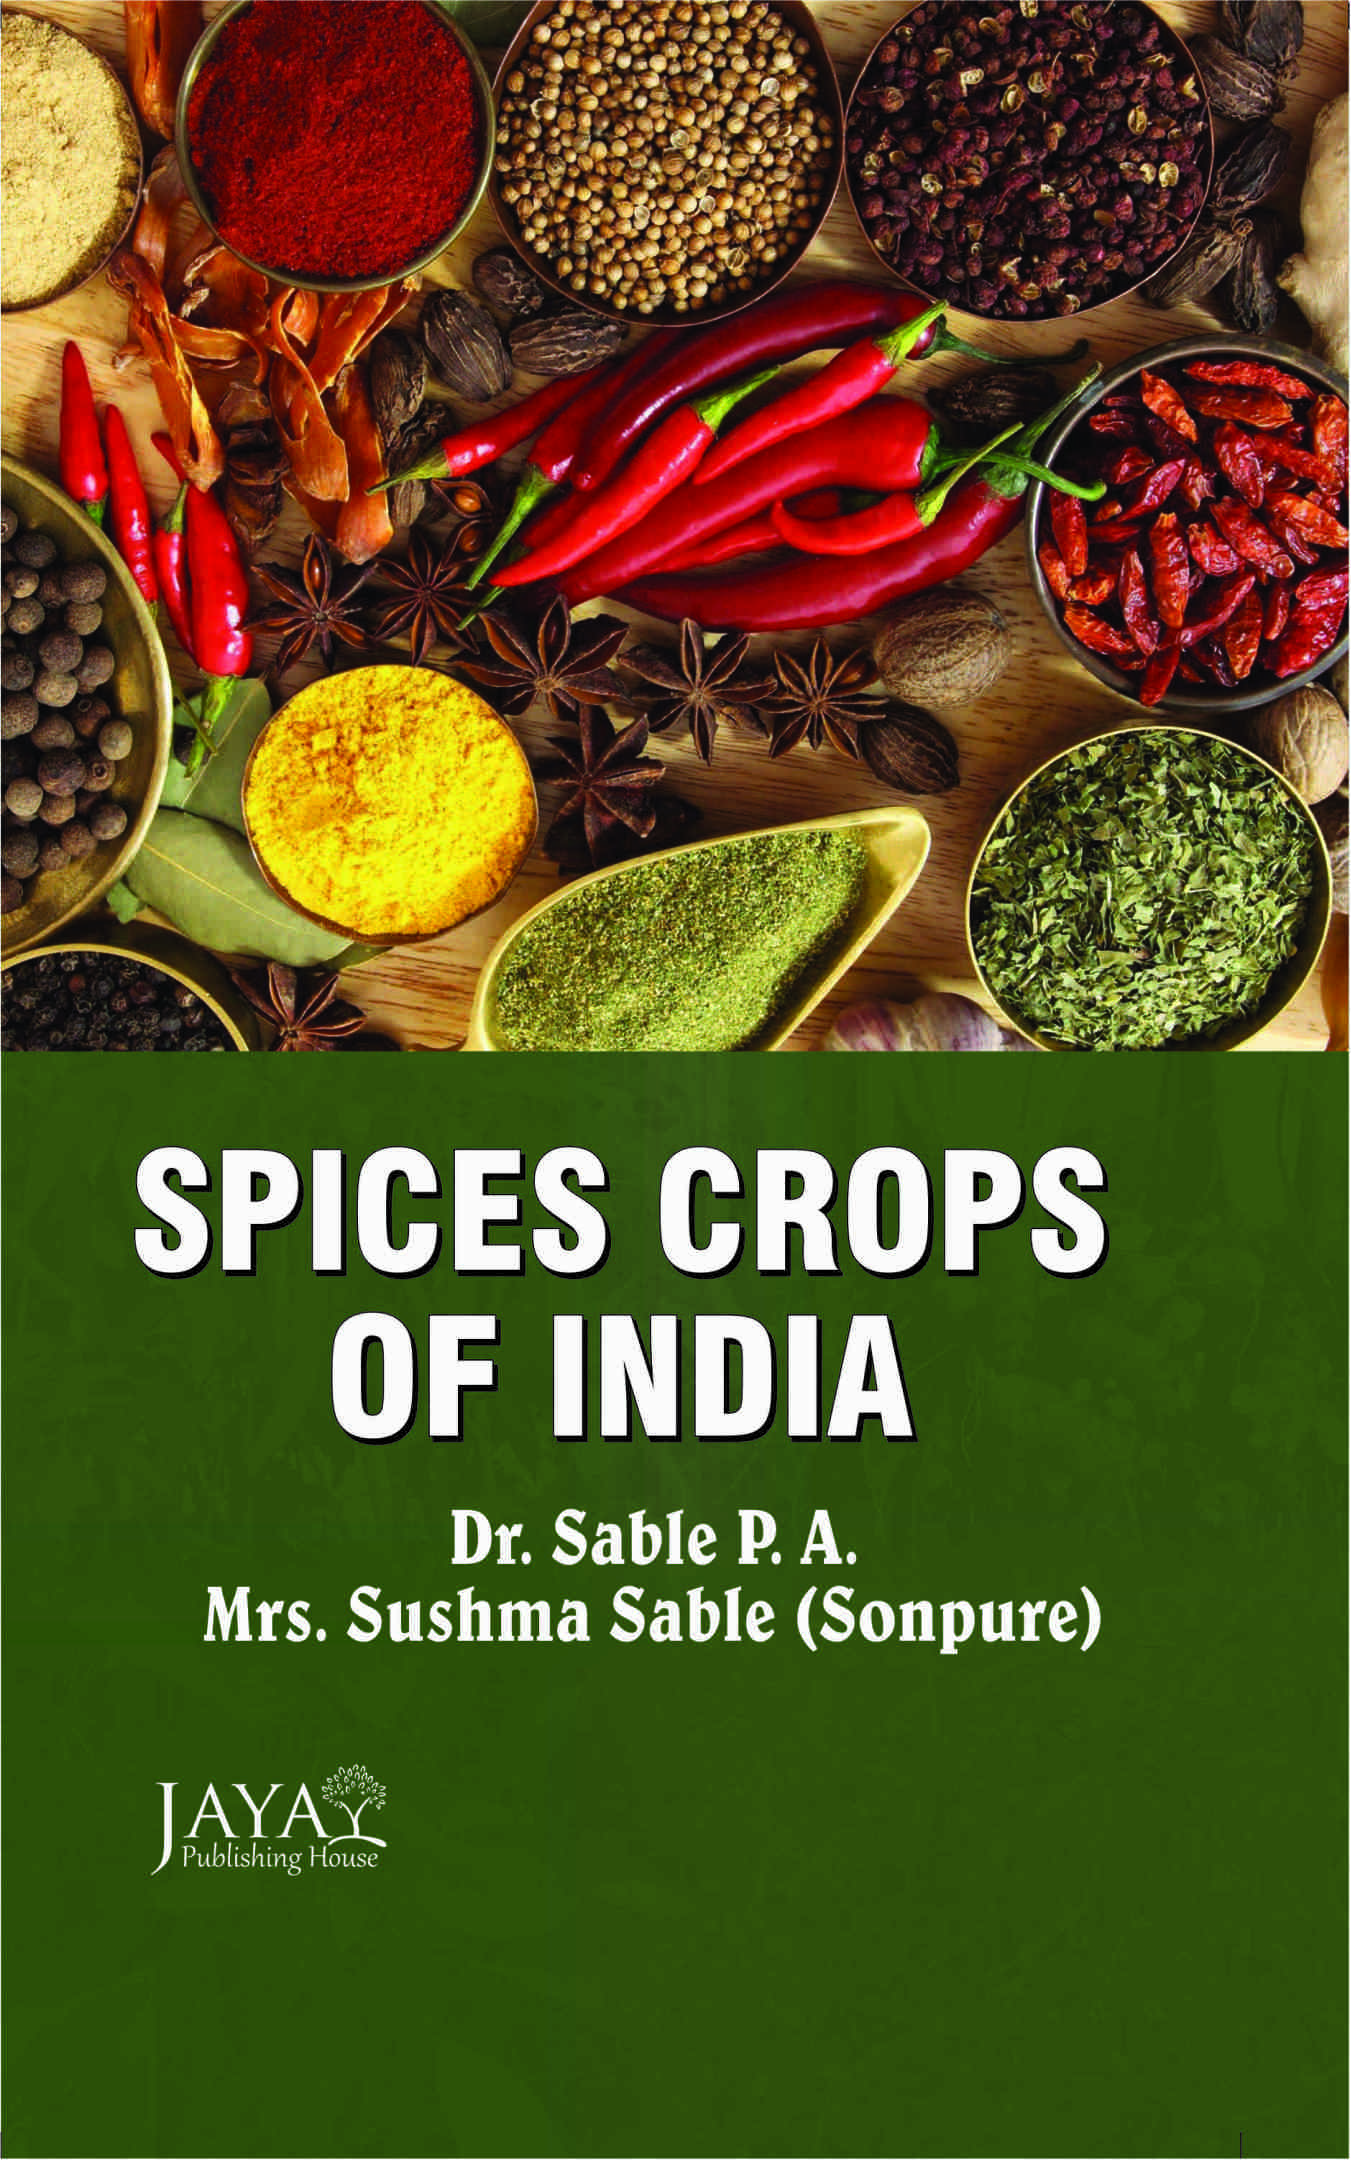 Spices Crops of India